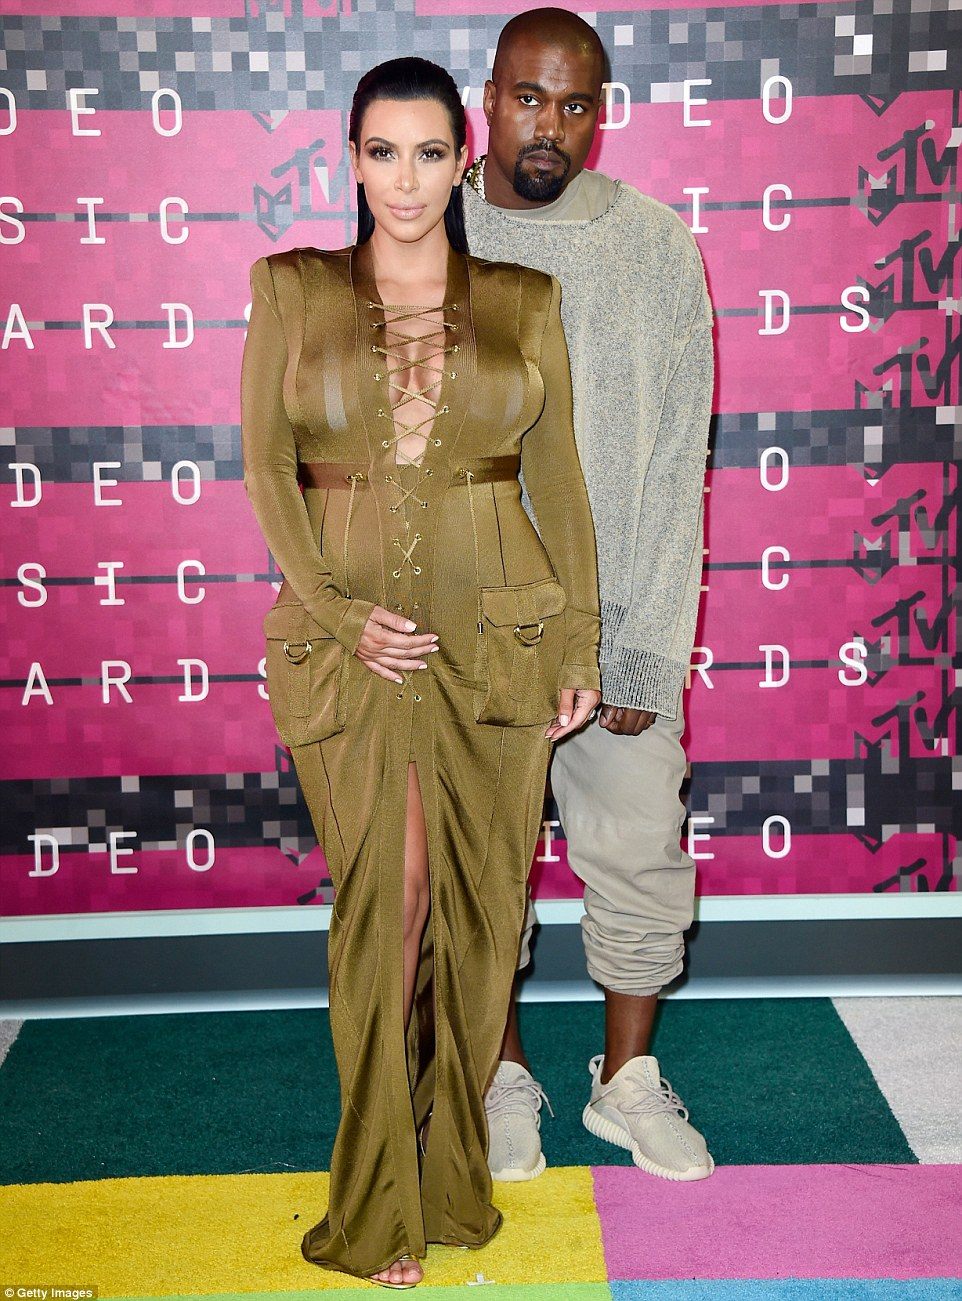 Right by his side: The 34-year-old was there to support her rapper other half, who received the Video Vanguard Award during the evening